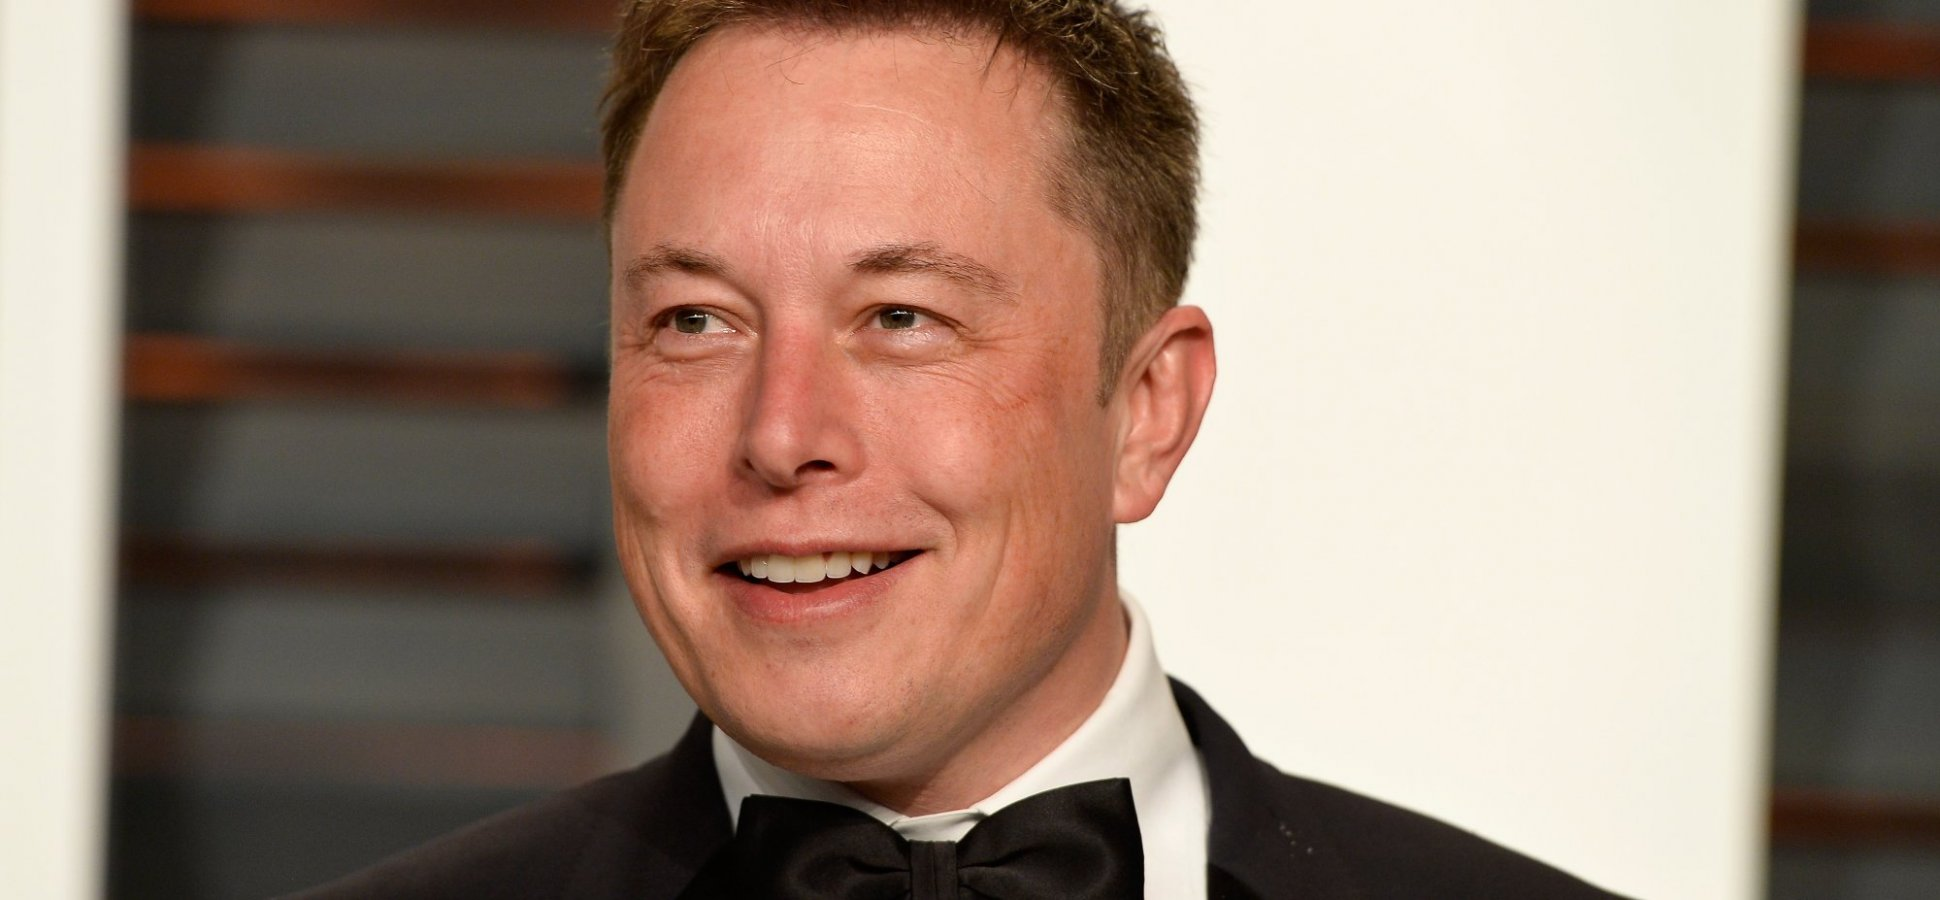 Want More Courage? Follow Elon Musk's 3 Rules Every Day | Inc.com